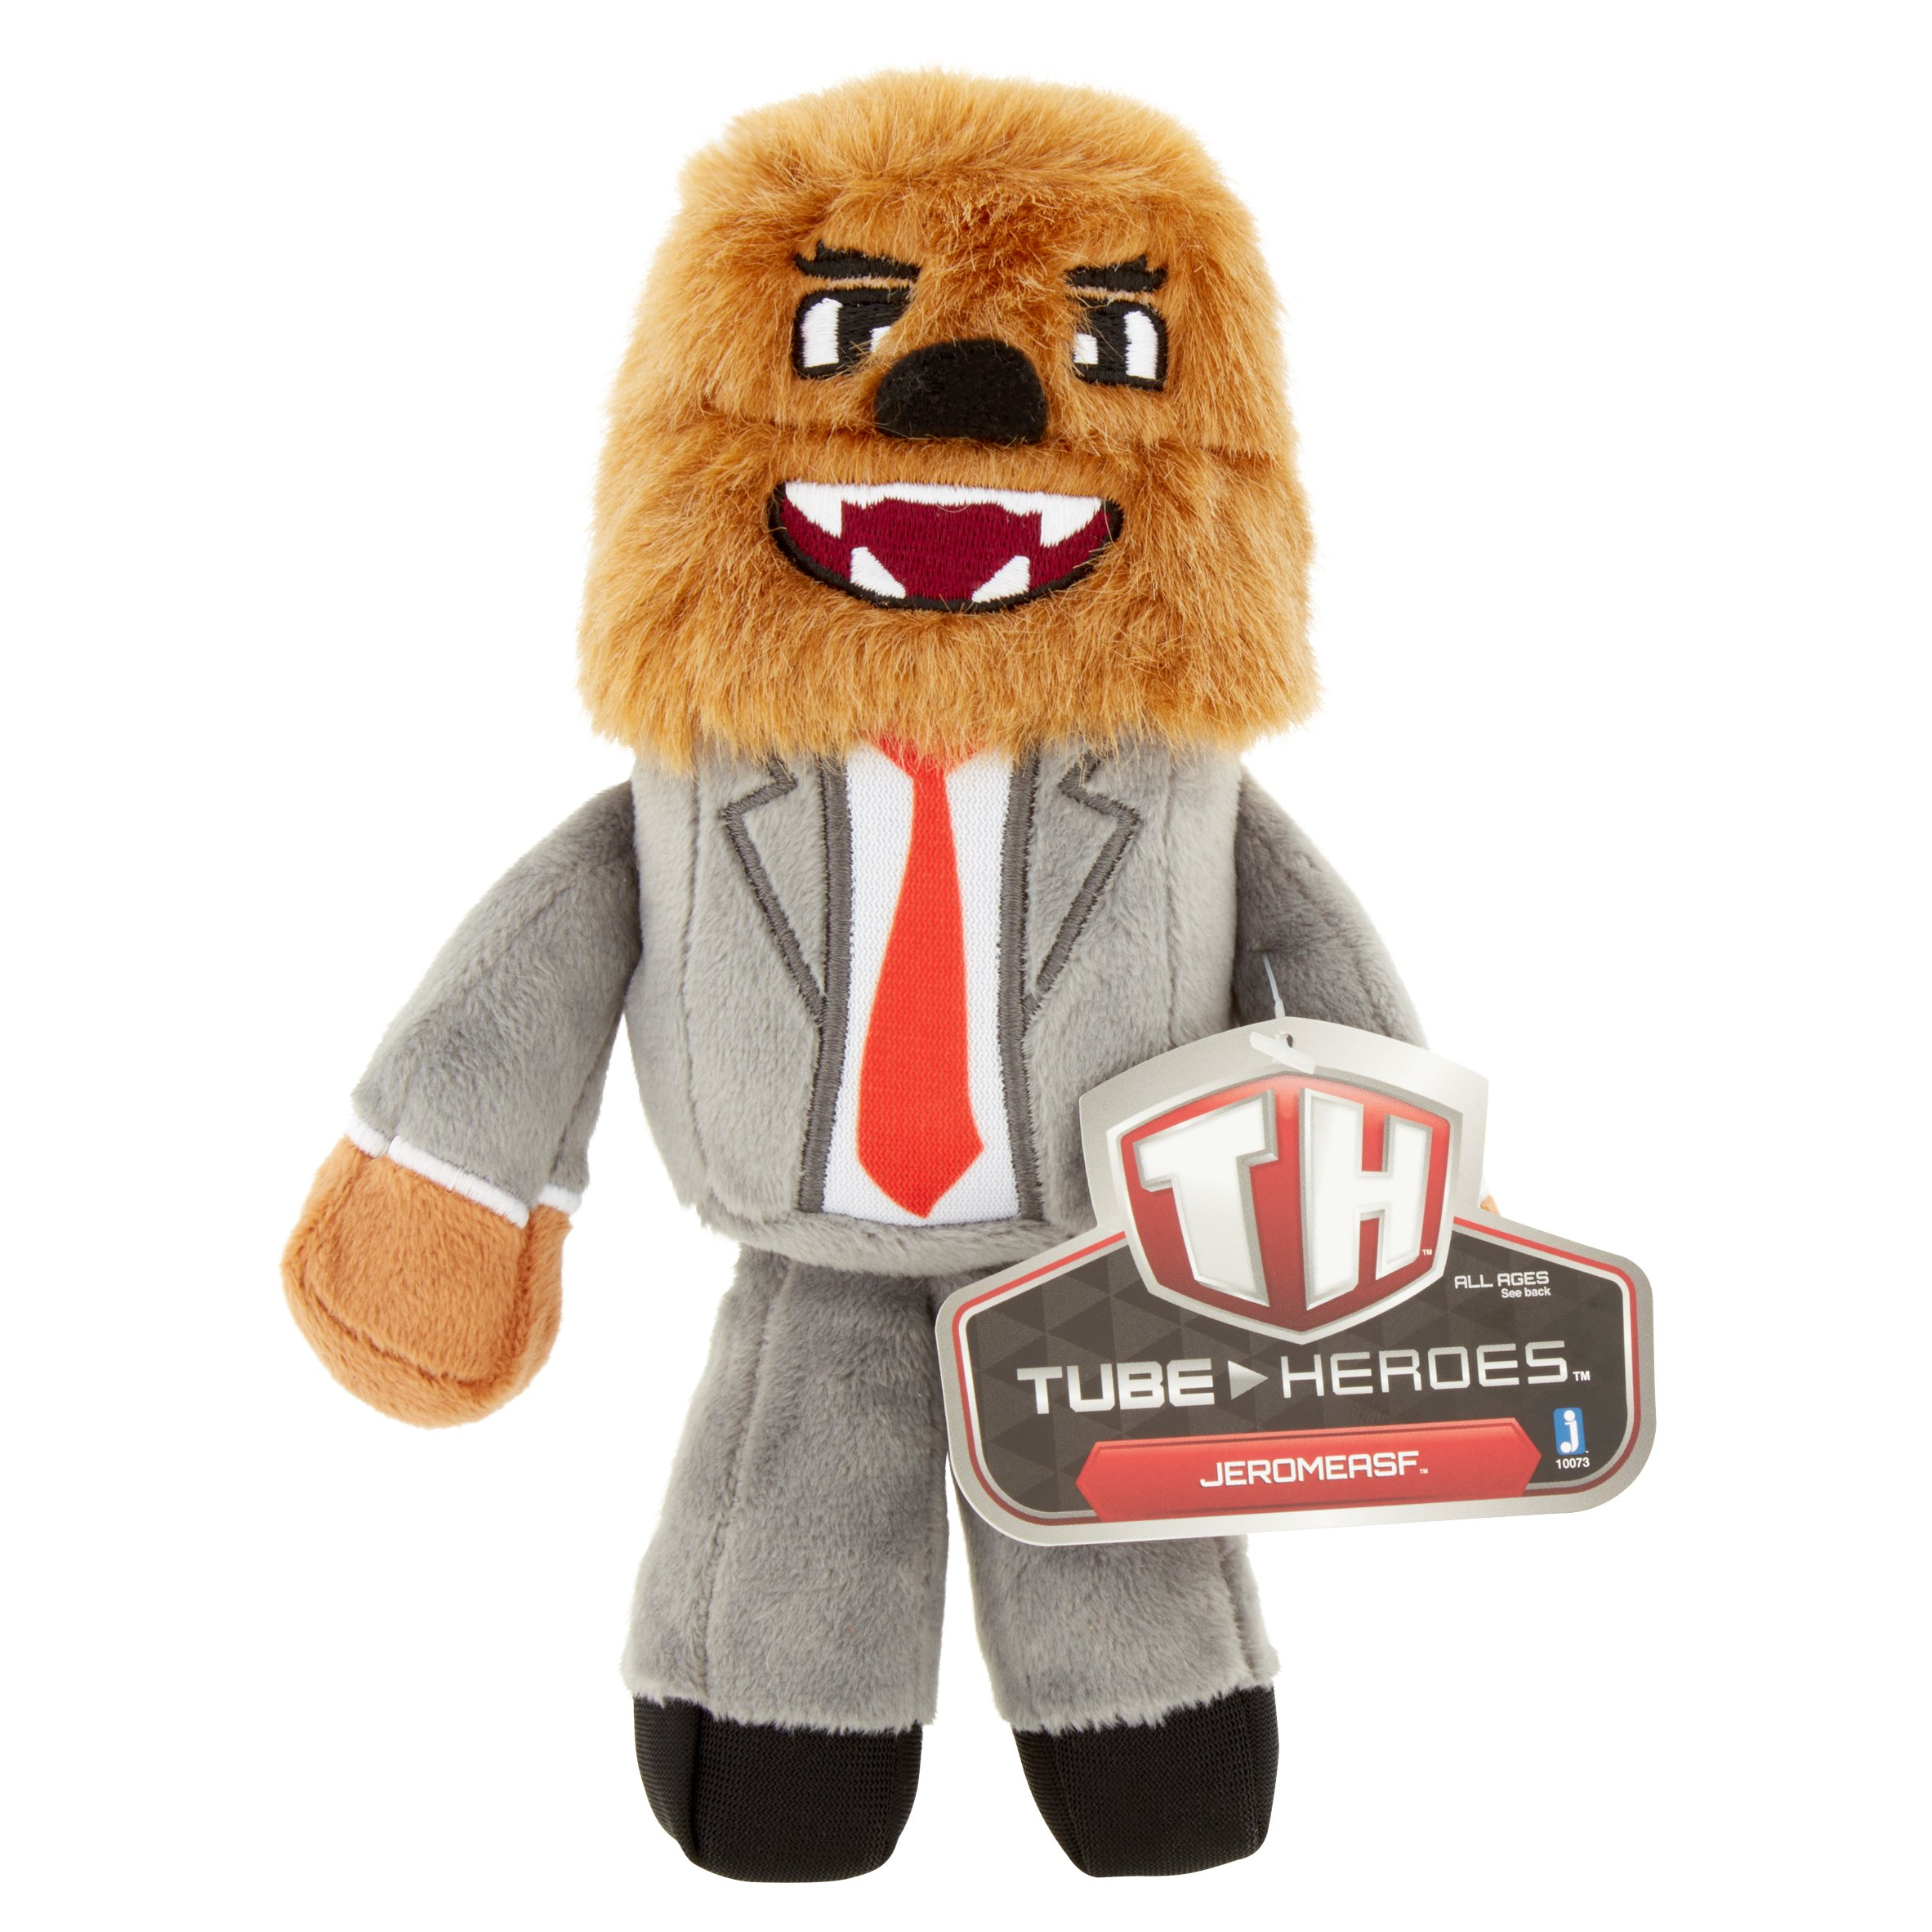 Tube Heroes JeromeASF Plush All Ages